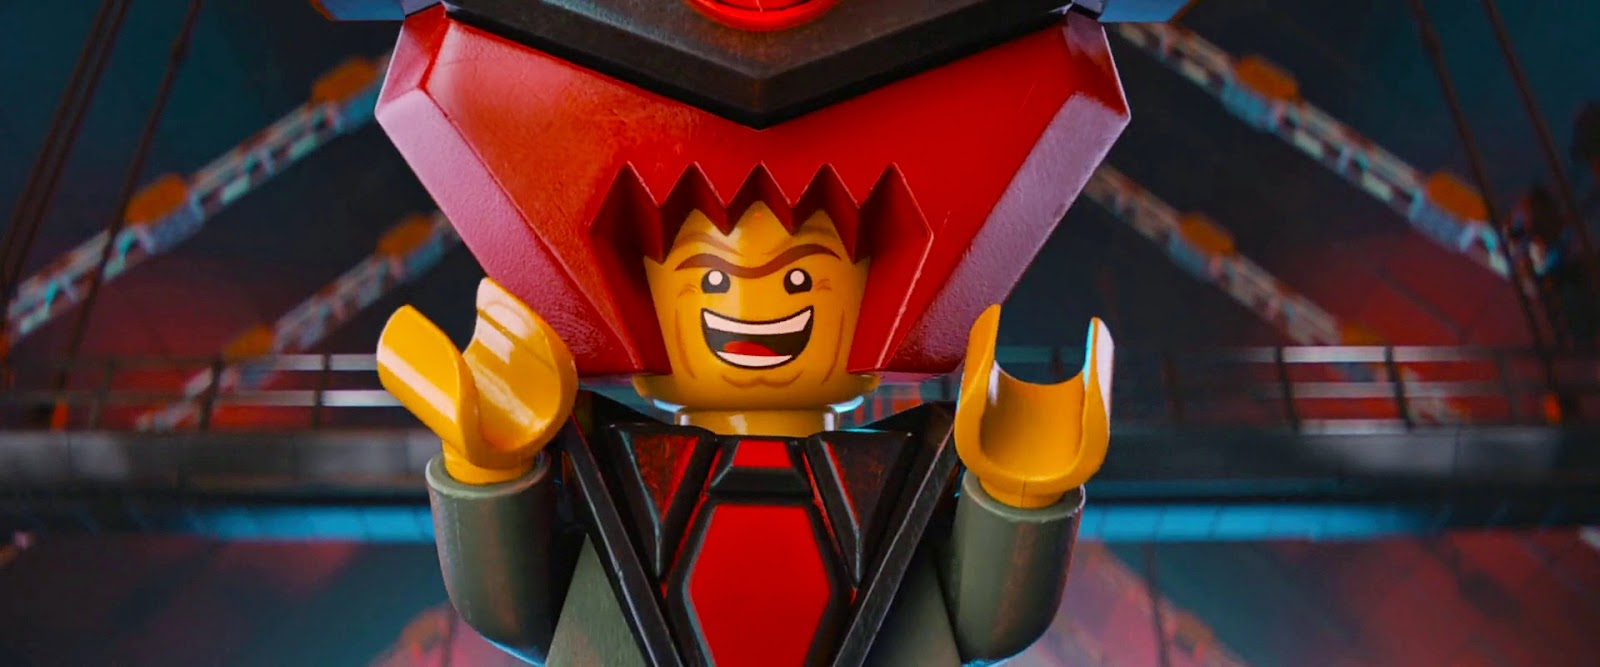 The Lego Movie (2014) 1080p S4 s The Lego Movie (2014) 1080p